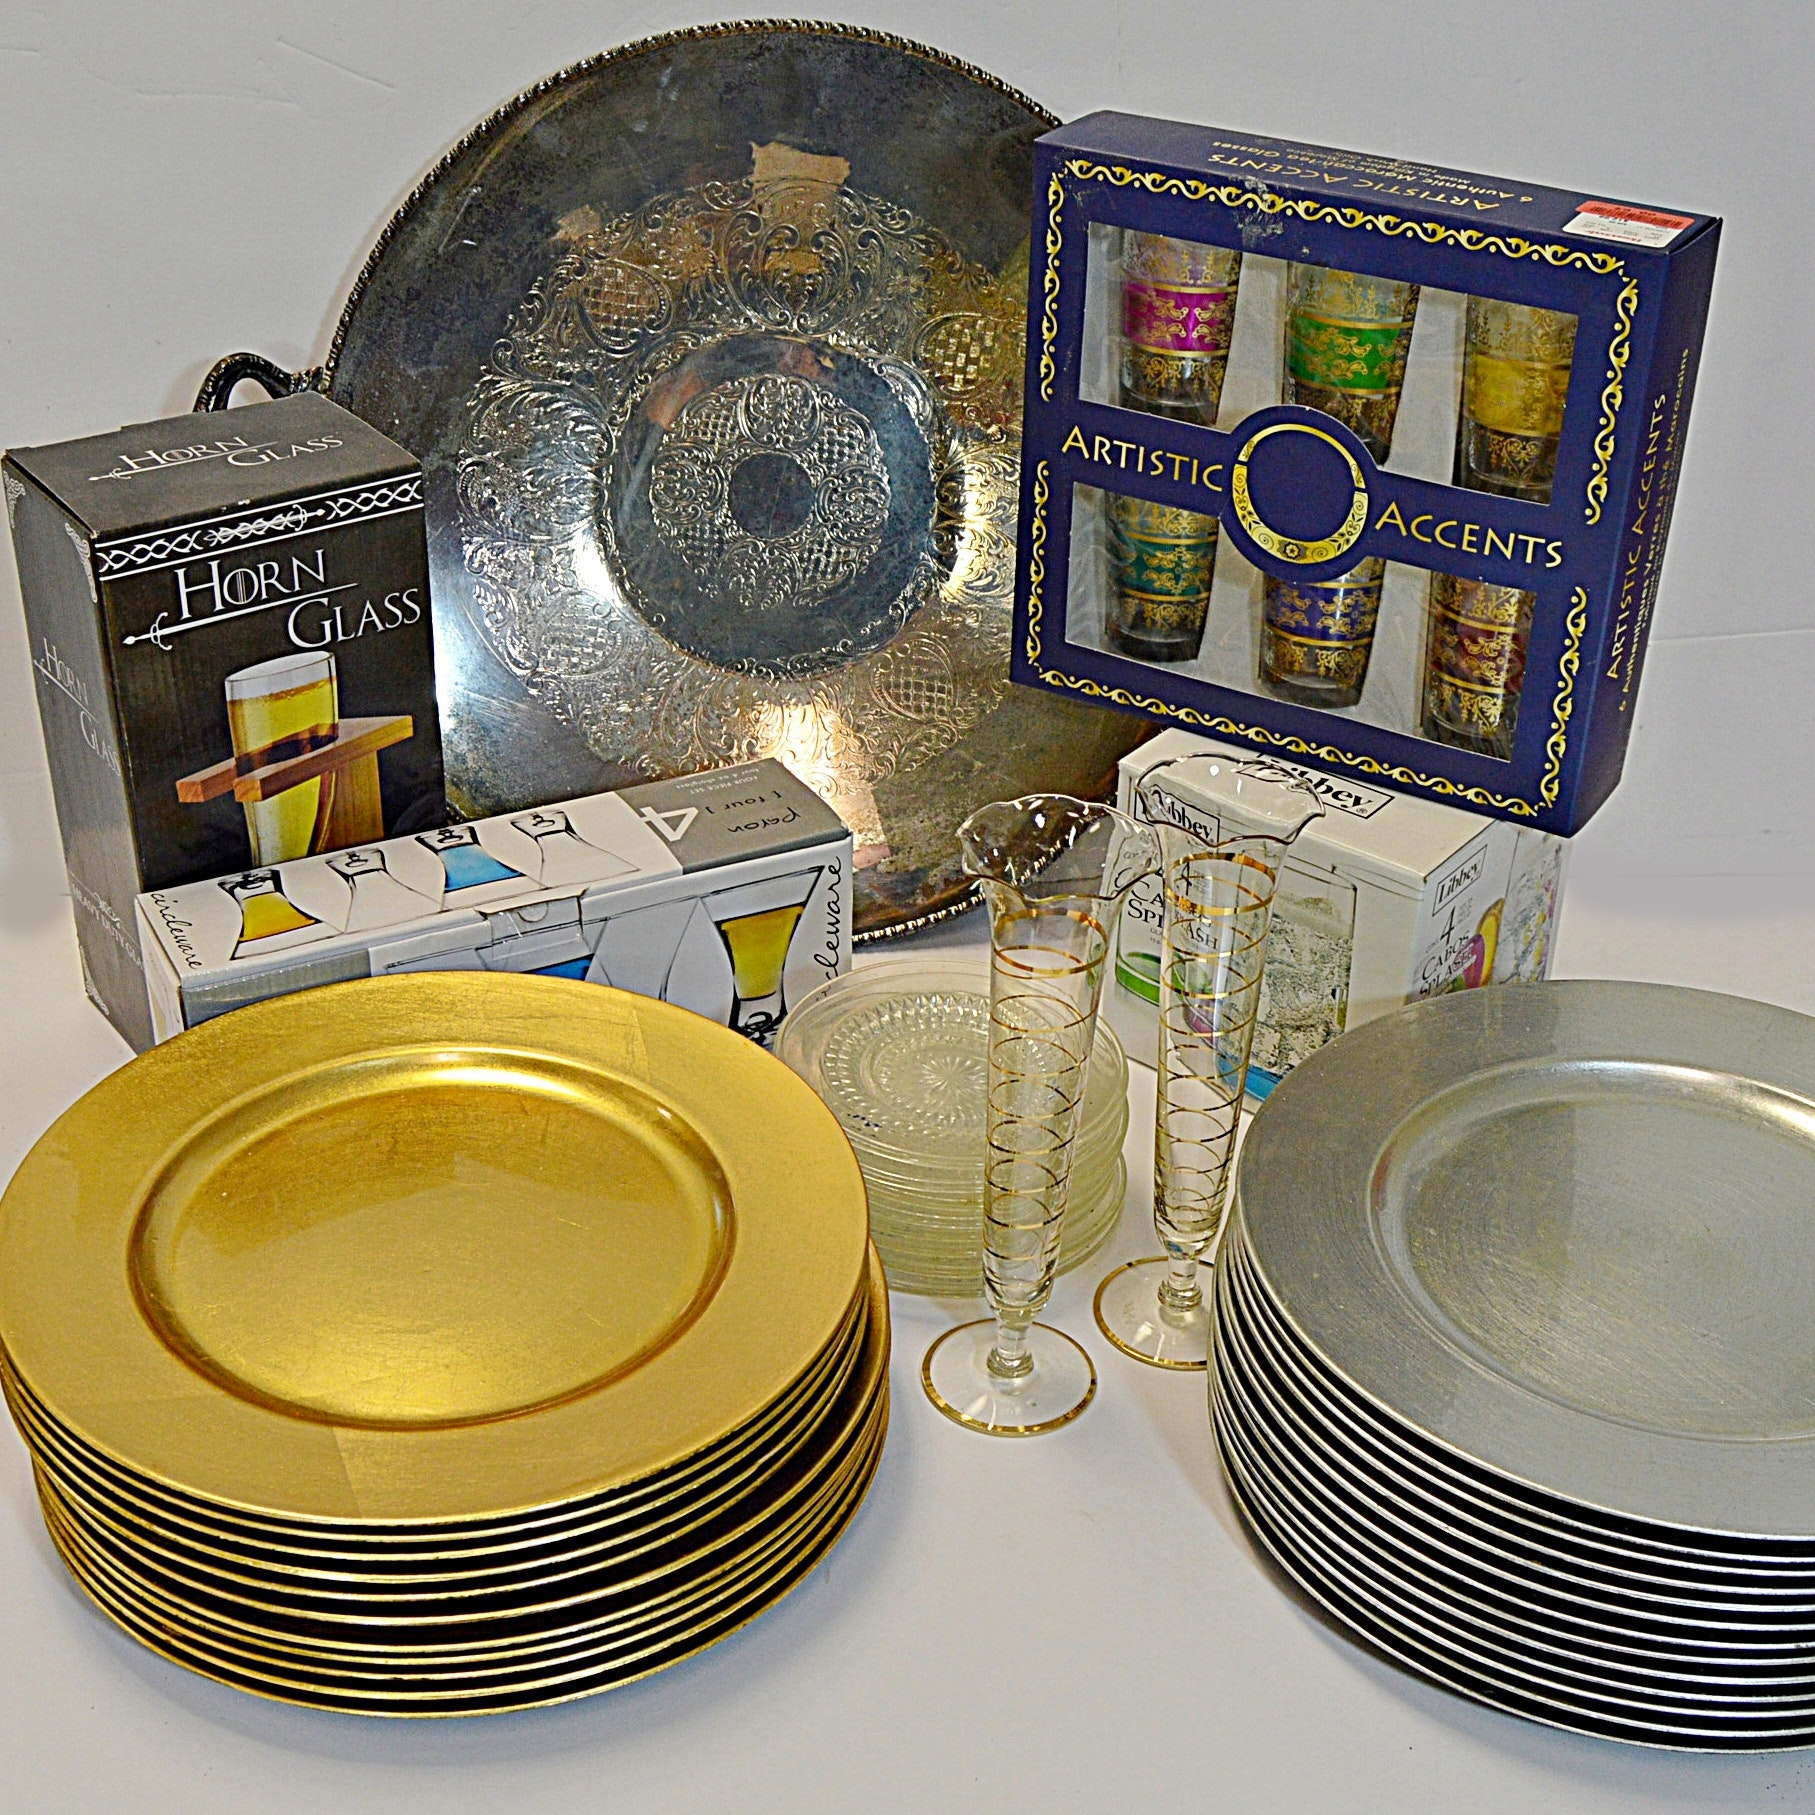 Tableware and Boxed Barware Sets with Vintage Tray and Pressed Glass Plates